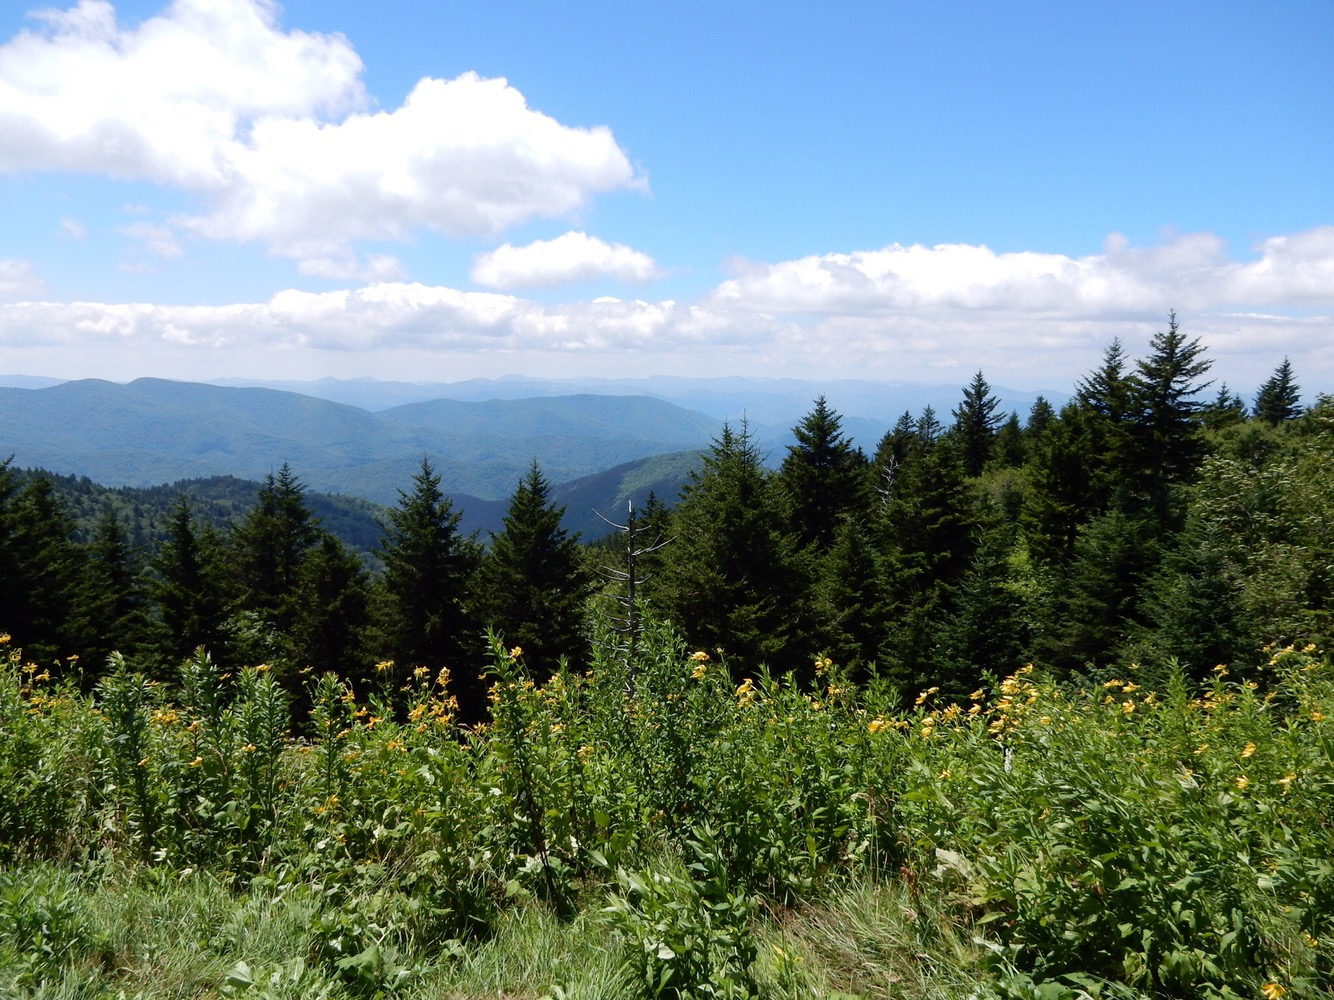 View from the Blue Ridge Parkway.